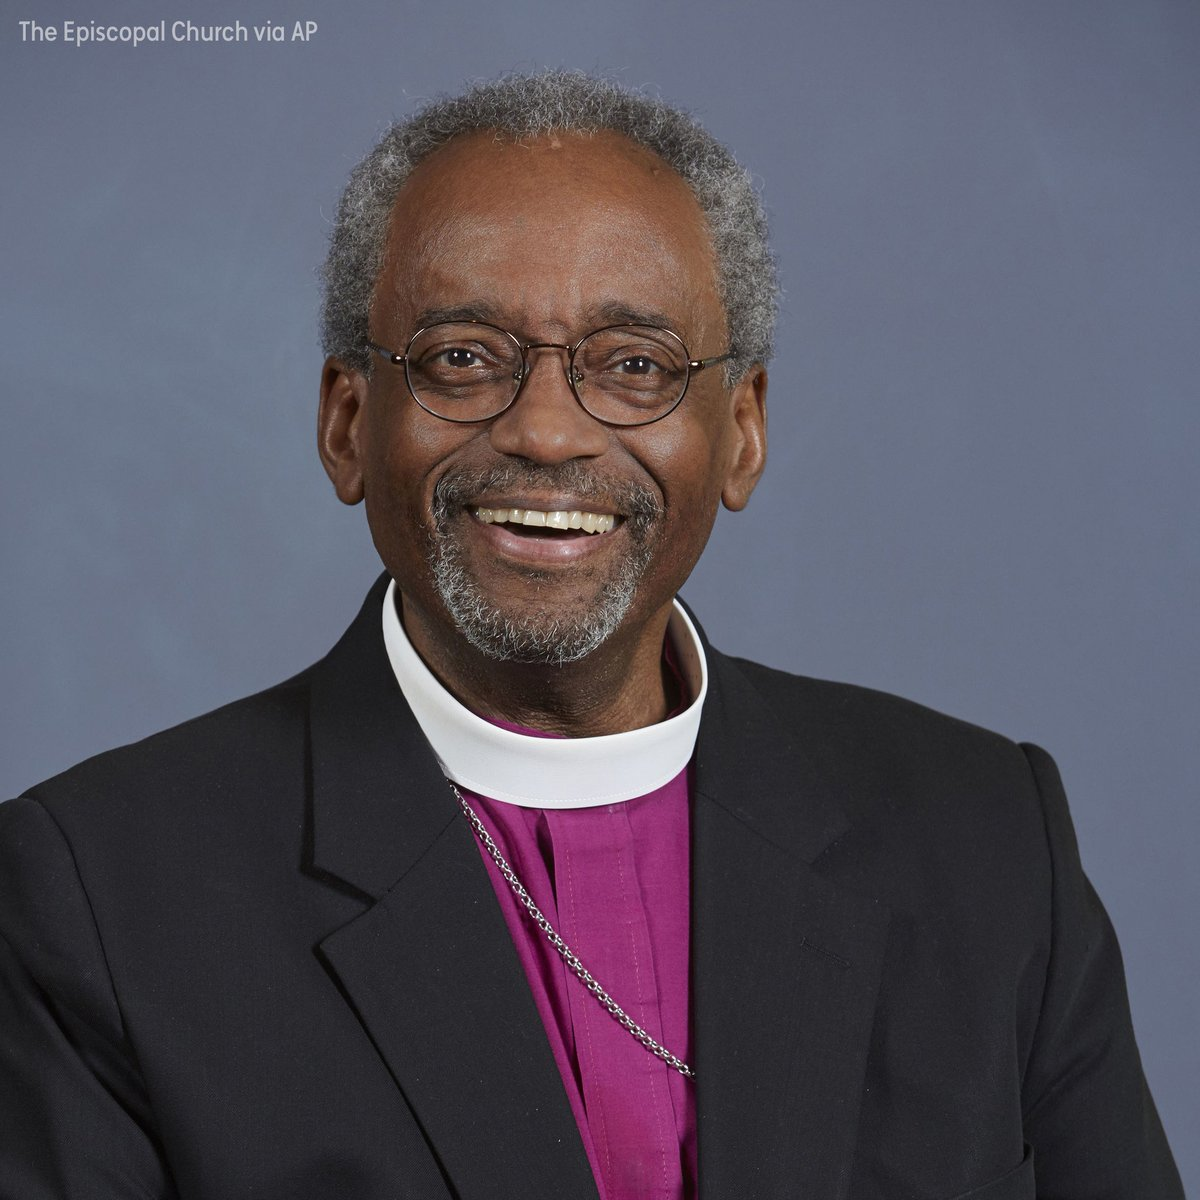 Bishop Michael Curry From Chicago To Give Address At Royal